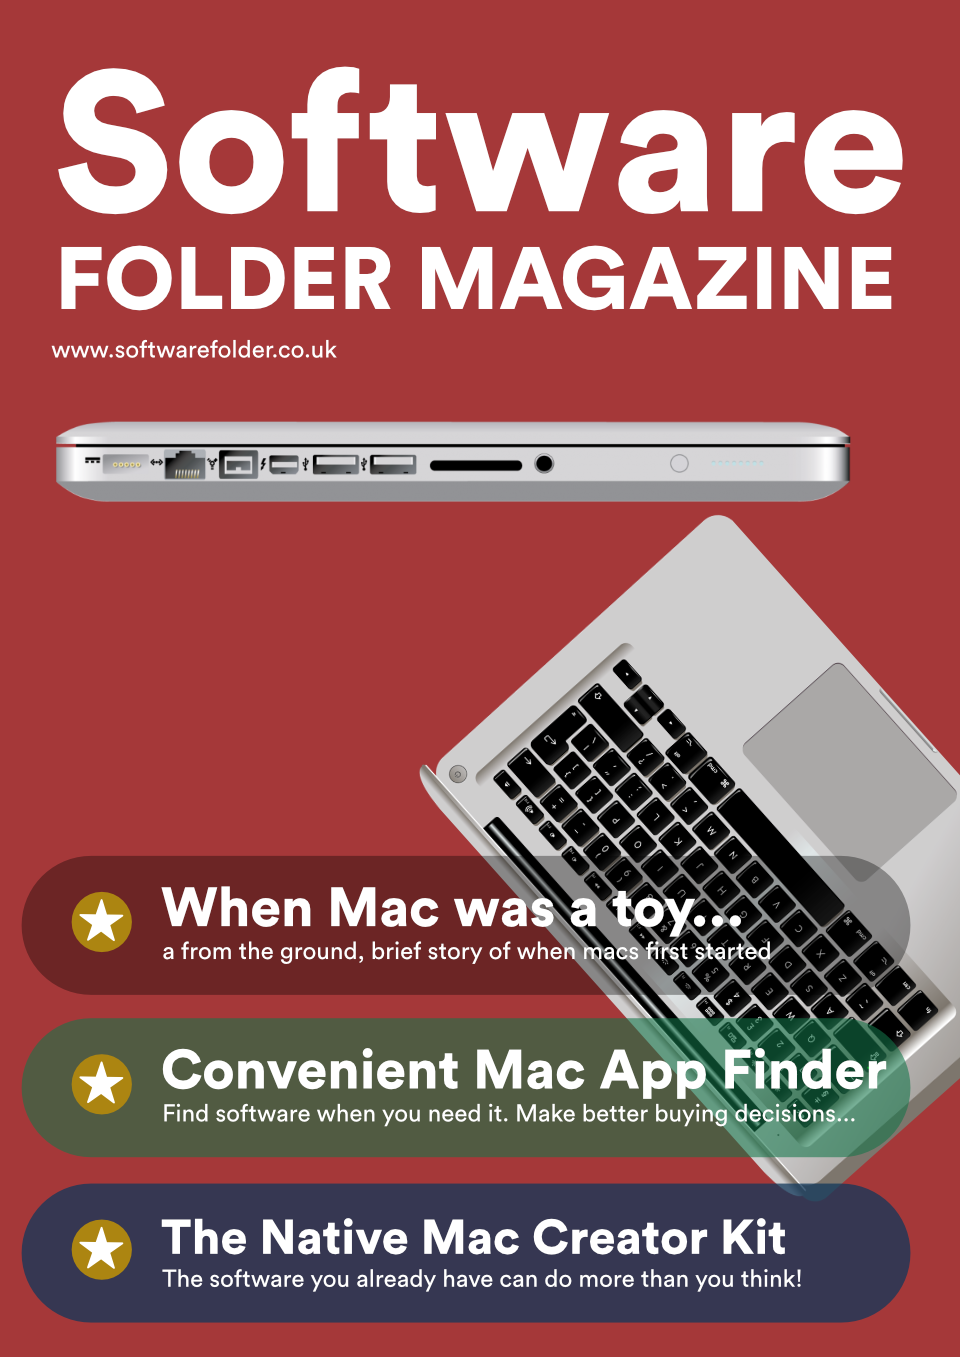 software-folder-magazine-when-mac-woz-toy